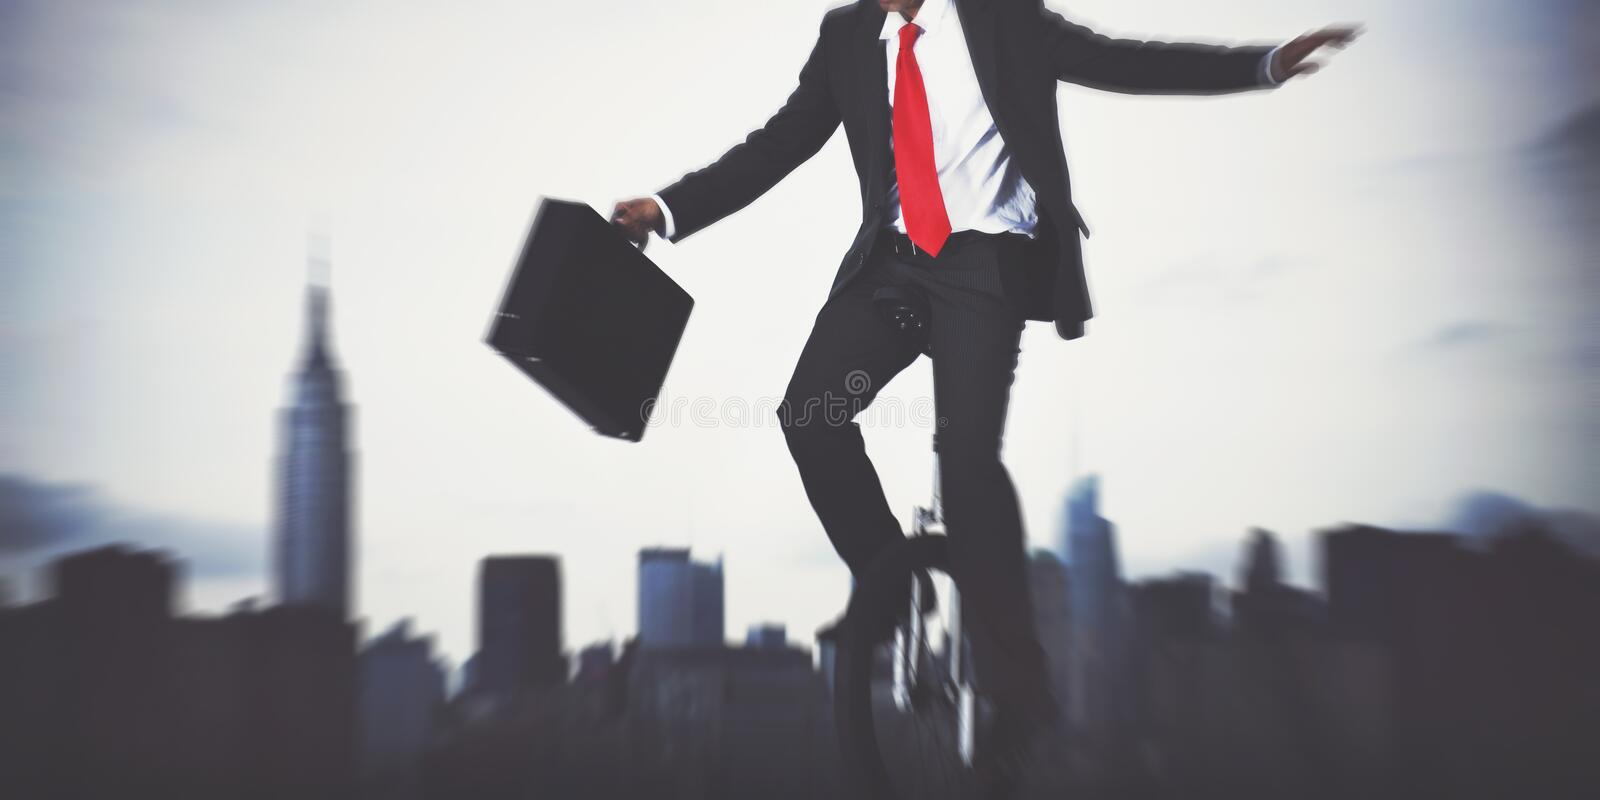 Businessman Taking A Risk In New York City.  royalty free stock photos